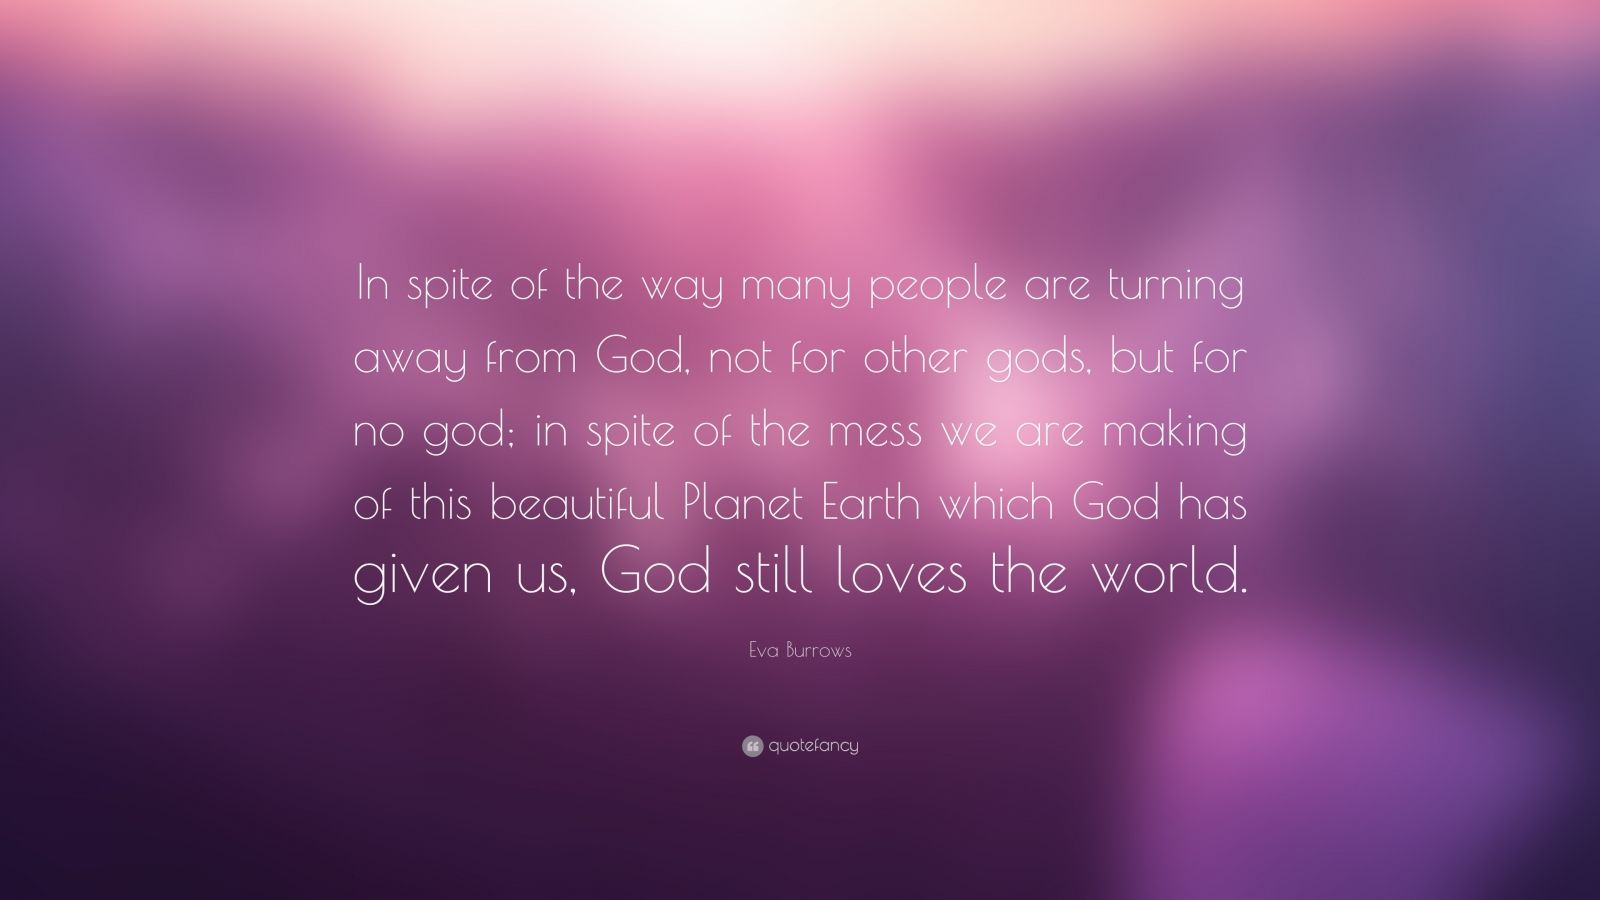 Loves Wallpapers With Quotes Eva Burrows Quote In Spite Of The Way Many People Are